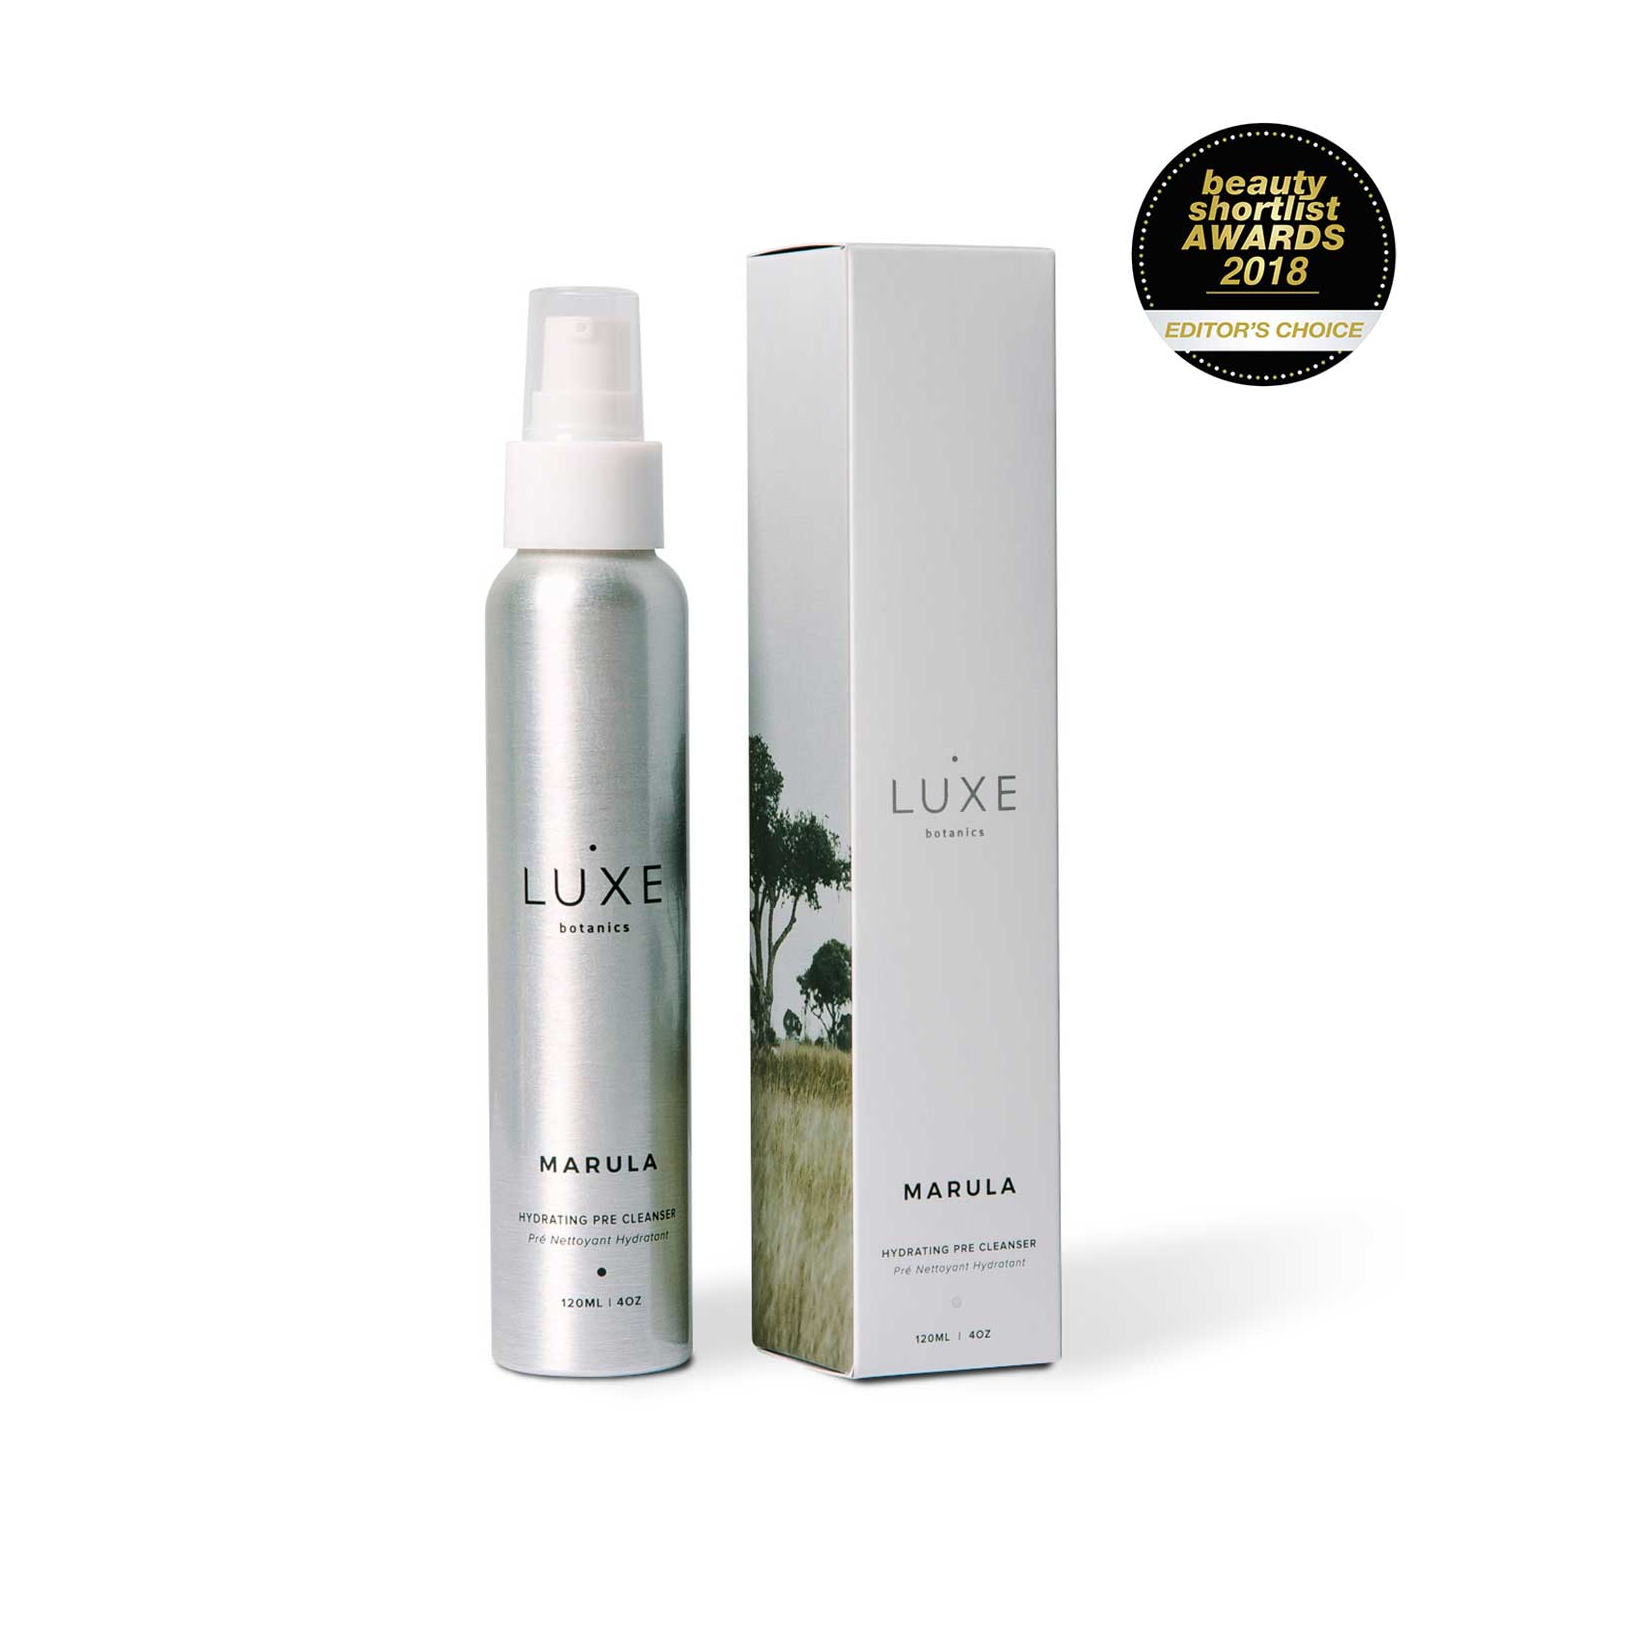 Luxe-Botanics-Marula-Hydrating-Pre-Cleanser-UK